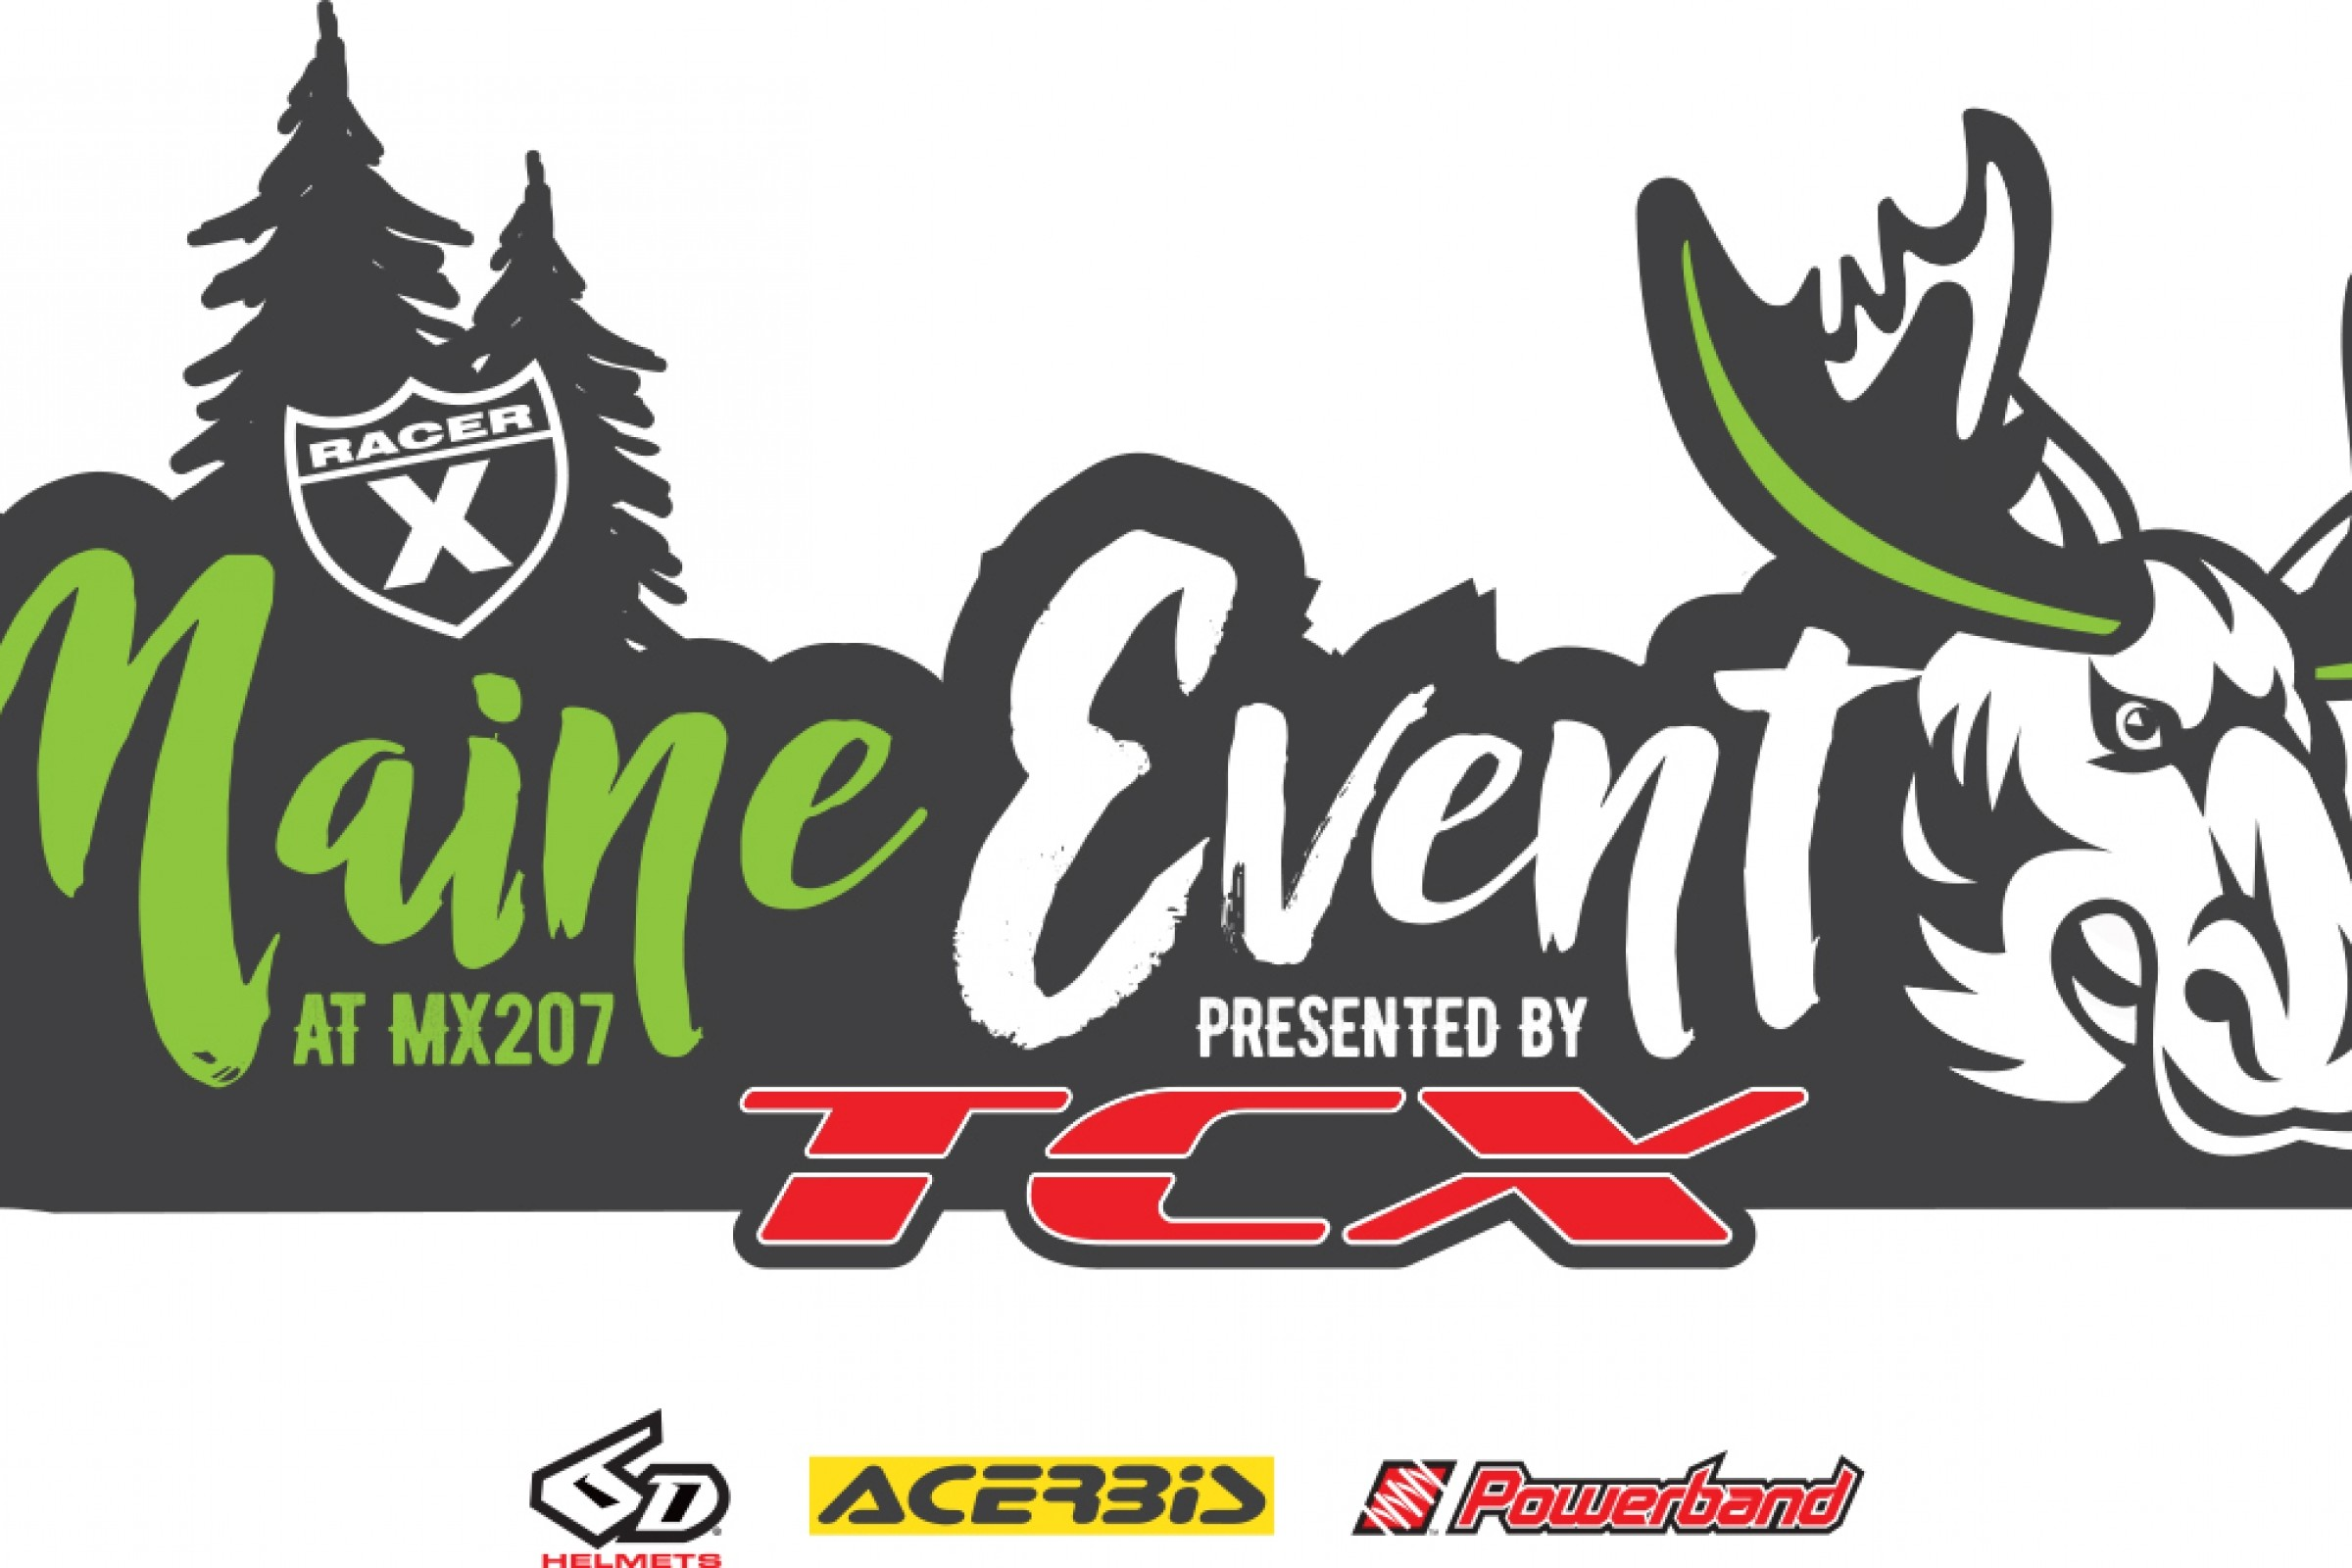 Join Us at the Racer X Maine Event This Weekend